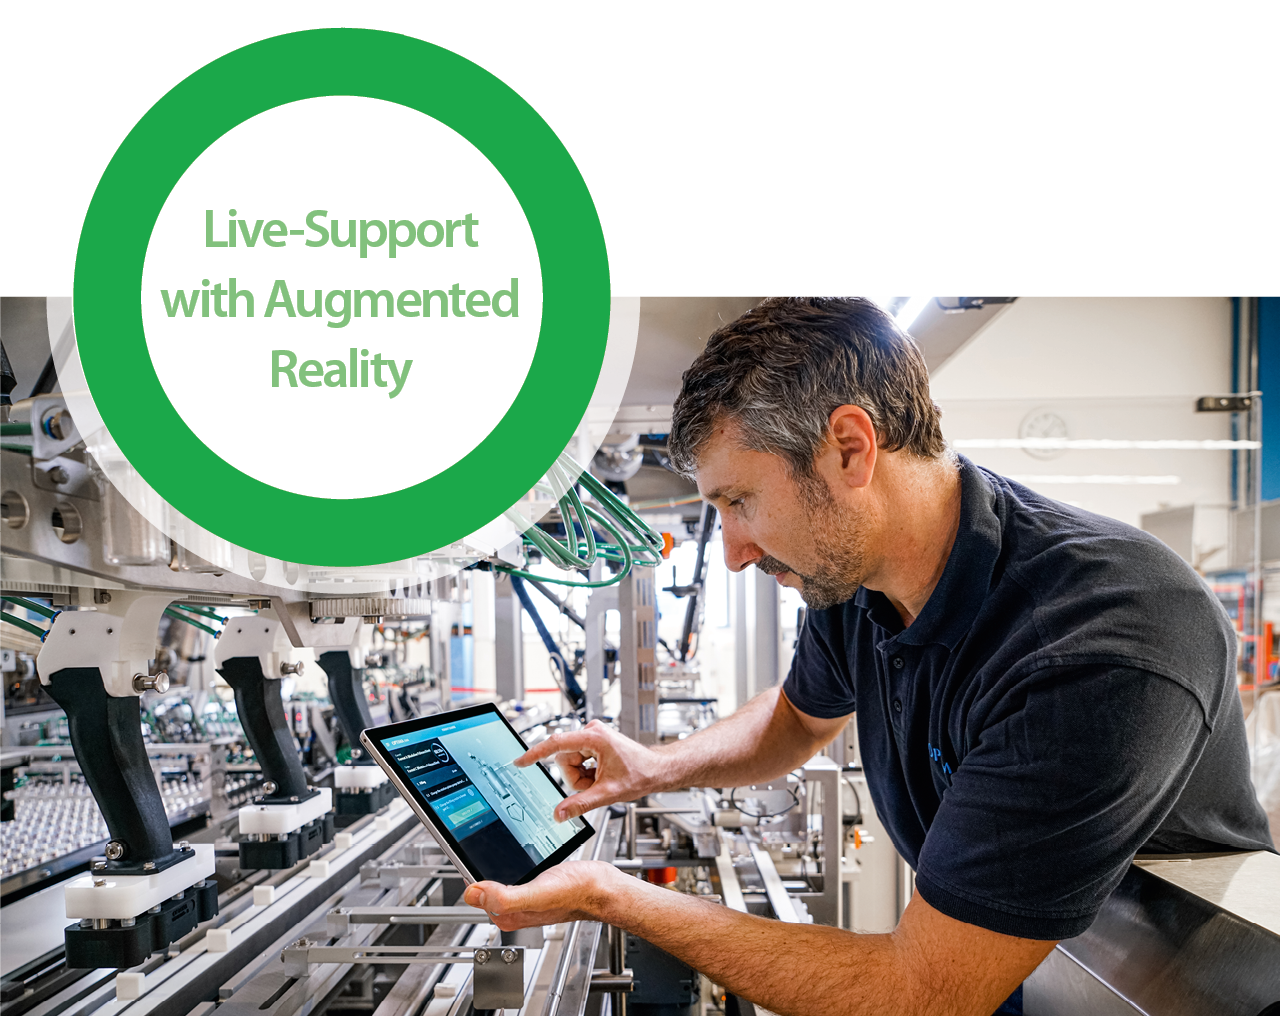 Live-Support with Augemented Reality (AR)